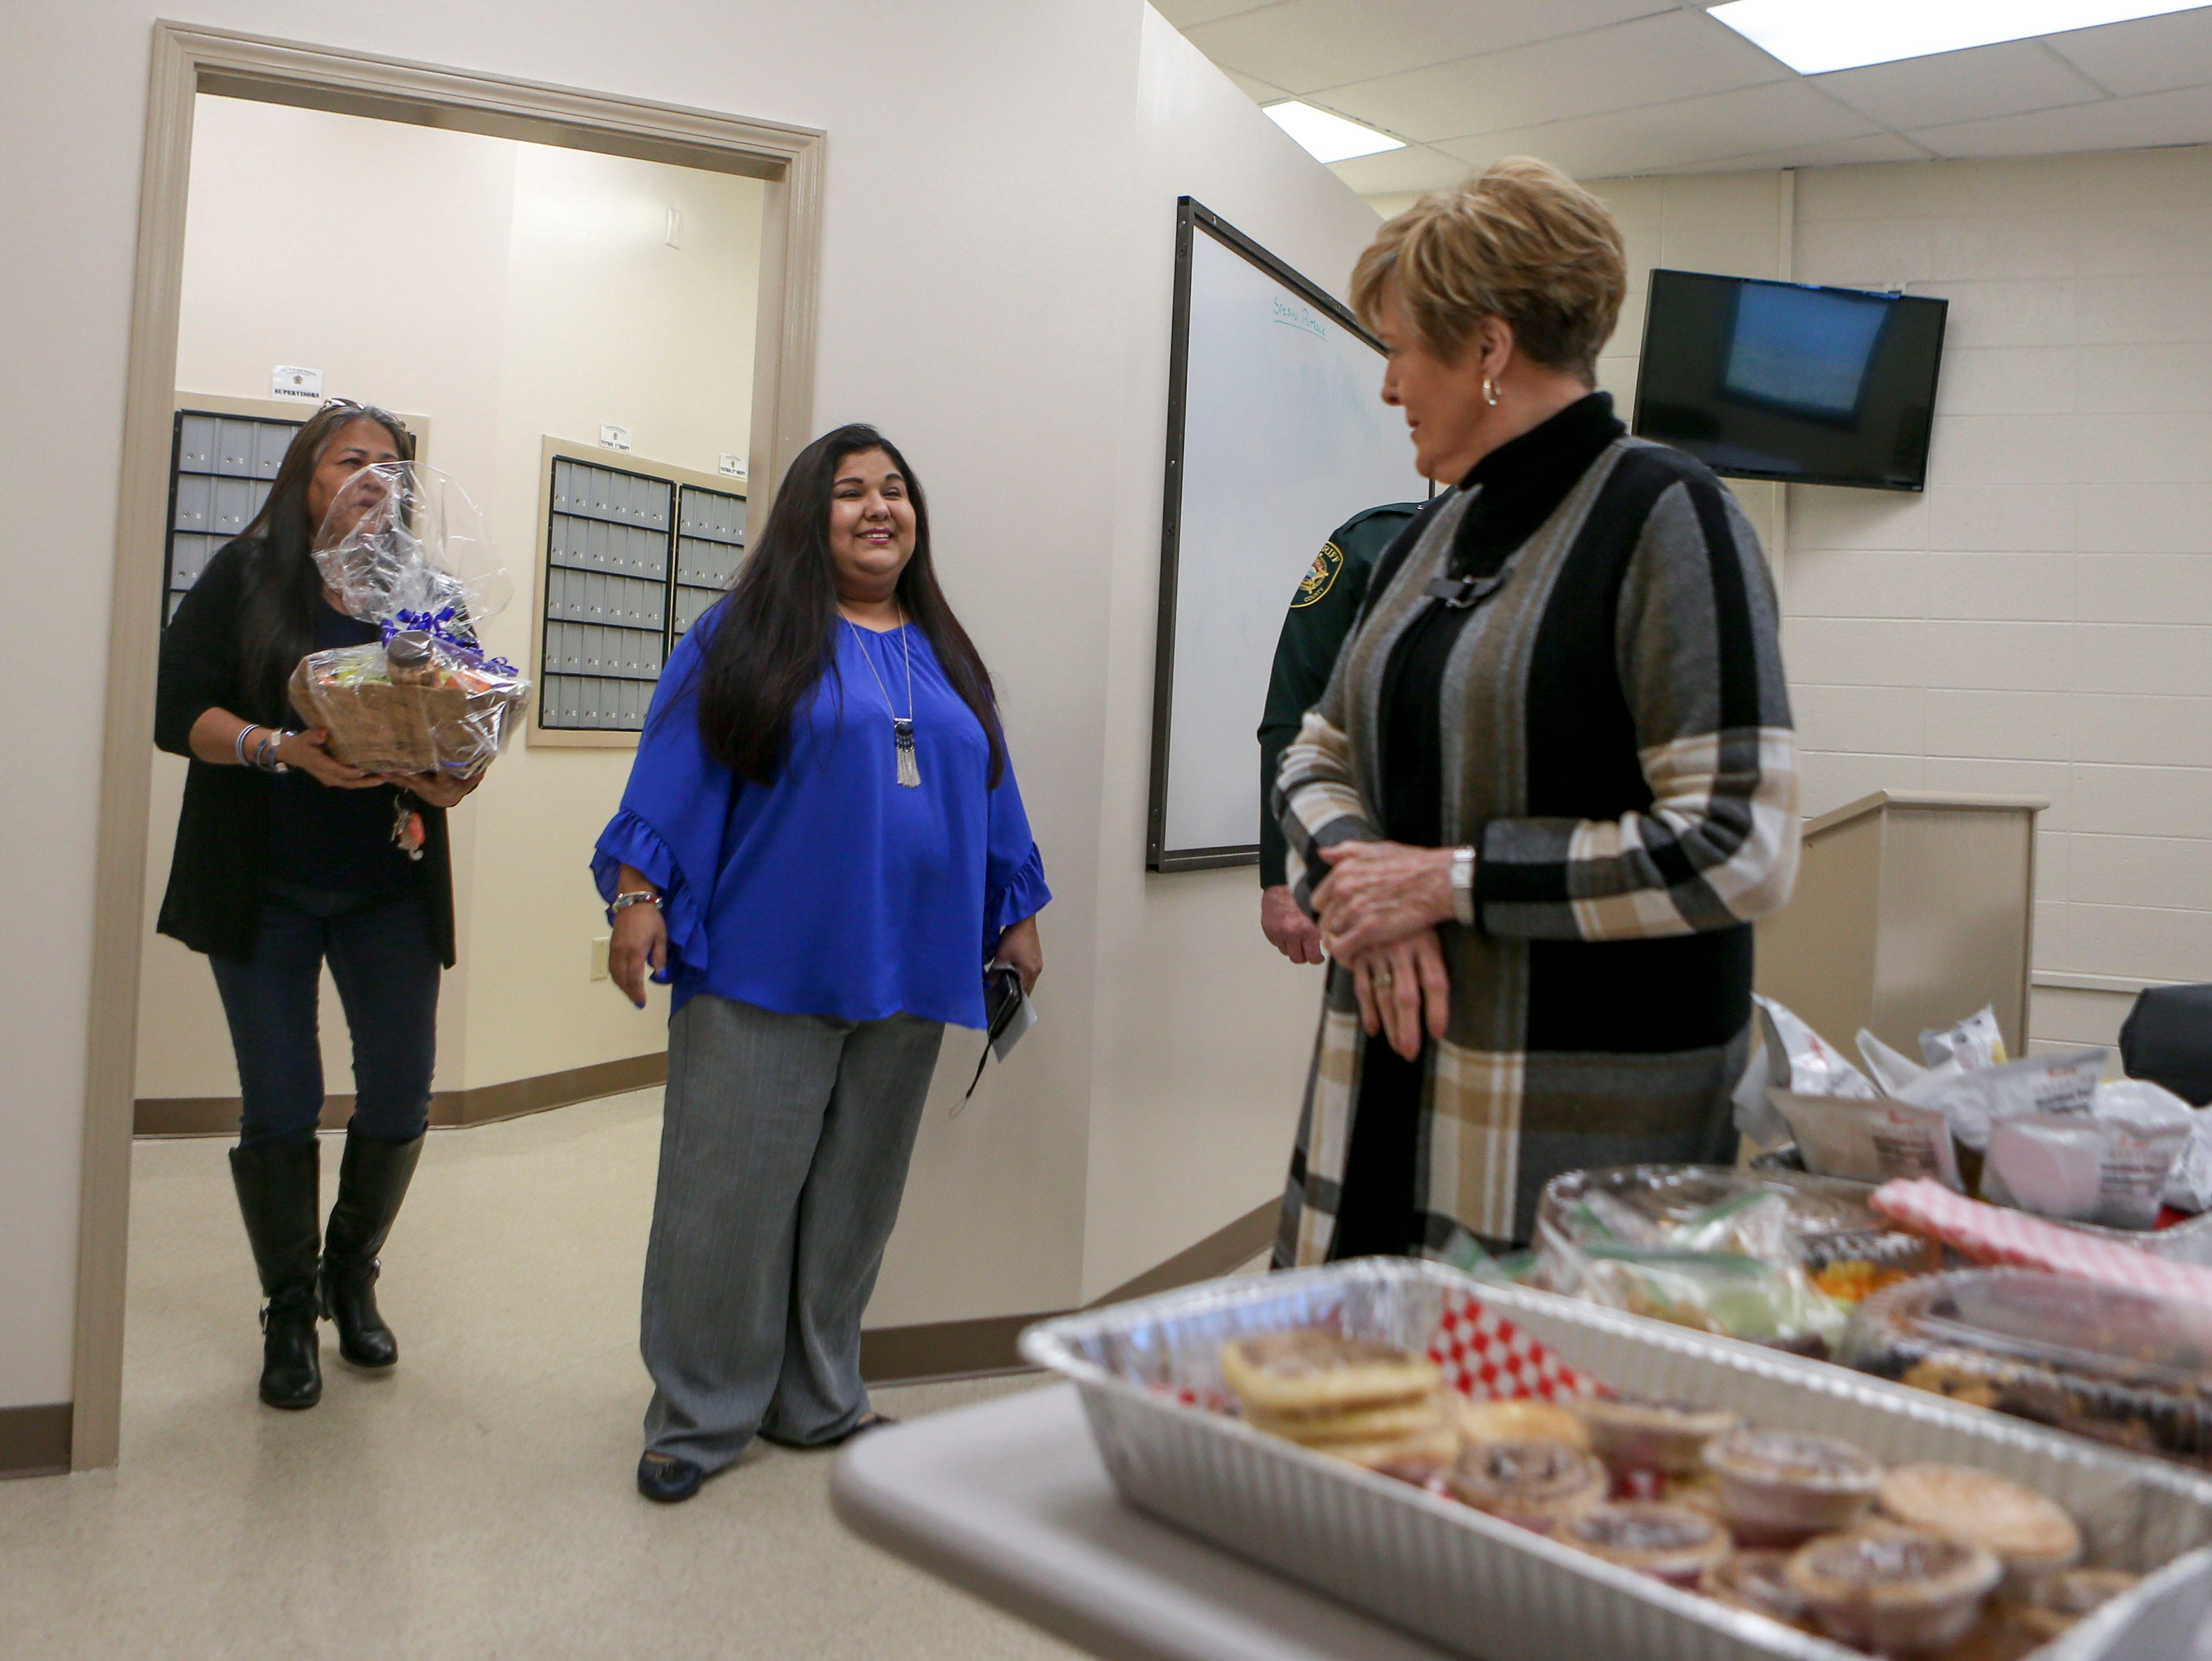 Emily Crabtree, right, welcomes Estella Villalobos, center, and Maria A. Vela, the respective aunt and mother of Rosemary Vela, a deputy for MCSO that died in the line of duty three years ago, at Madison County Sheriff's Office in Denmark, Tenn., on Wednesday, Jan. 9, 2019. Crabtree came out to deliver snacks for deputies on National Law Enforcement Day and Villalobos and Vela return every year.